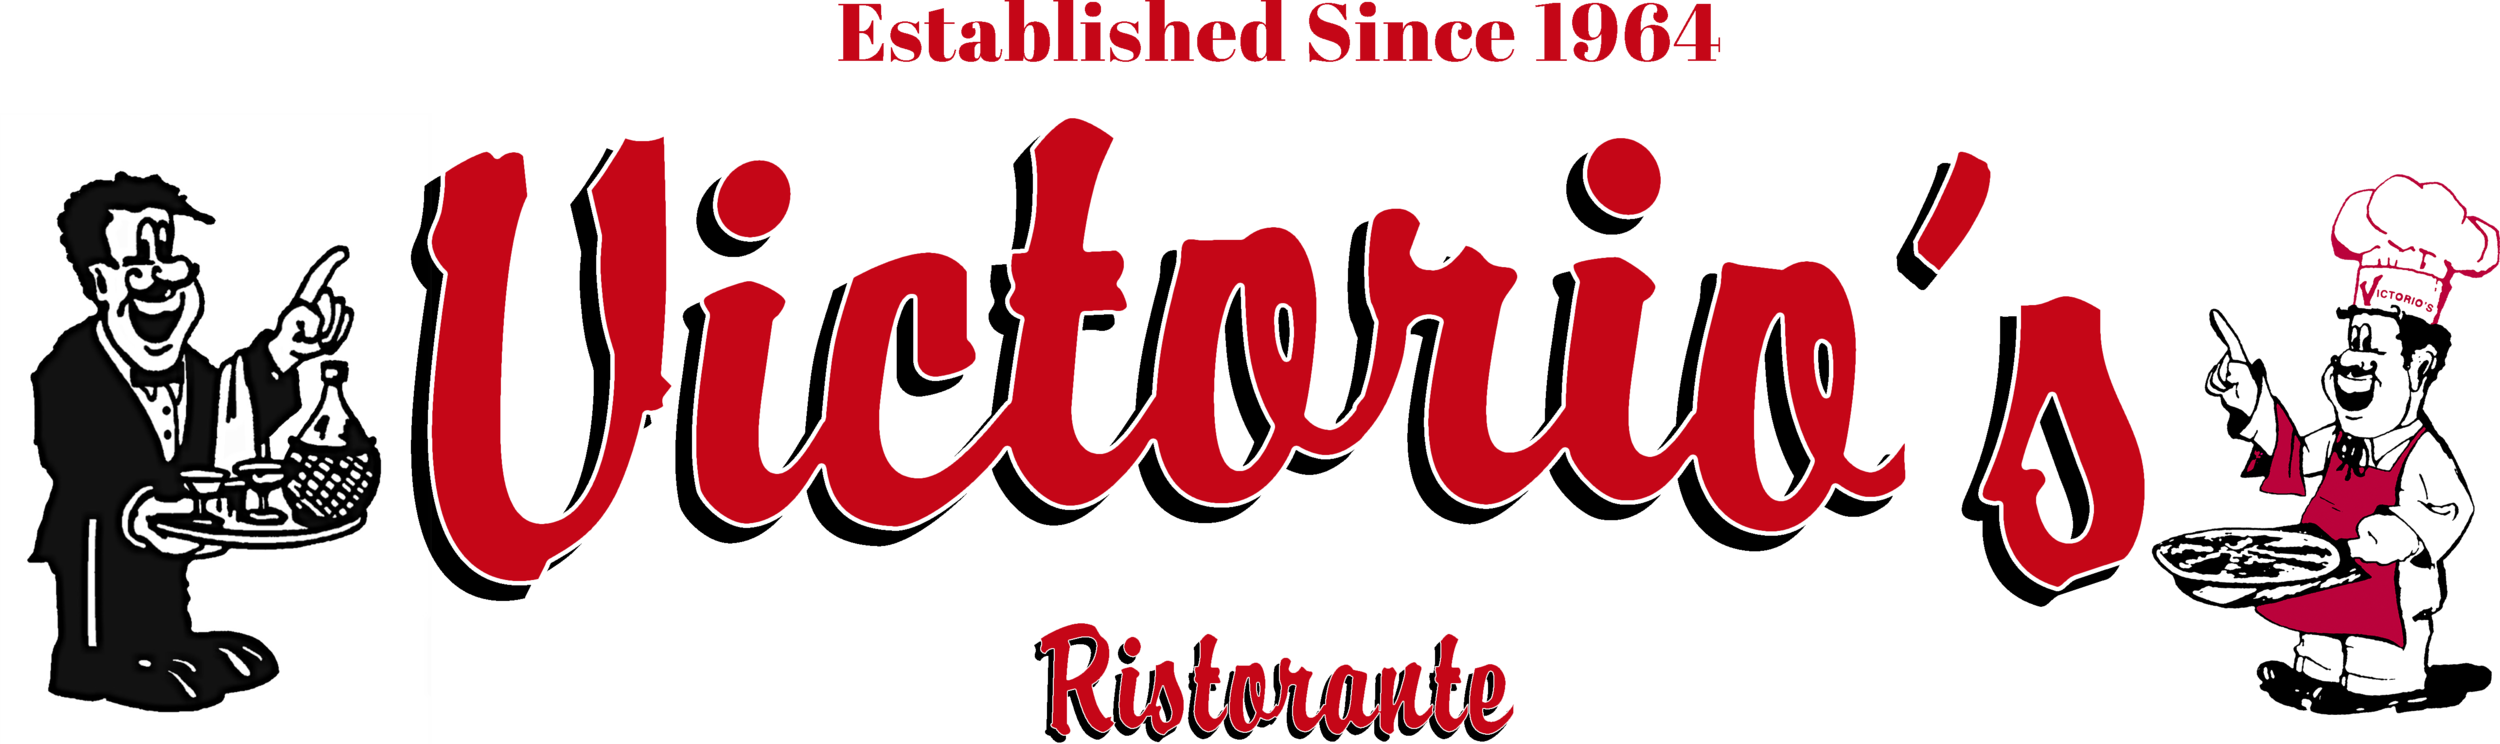 Victorio_Clean_Logo_Characters.png